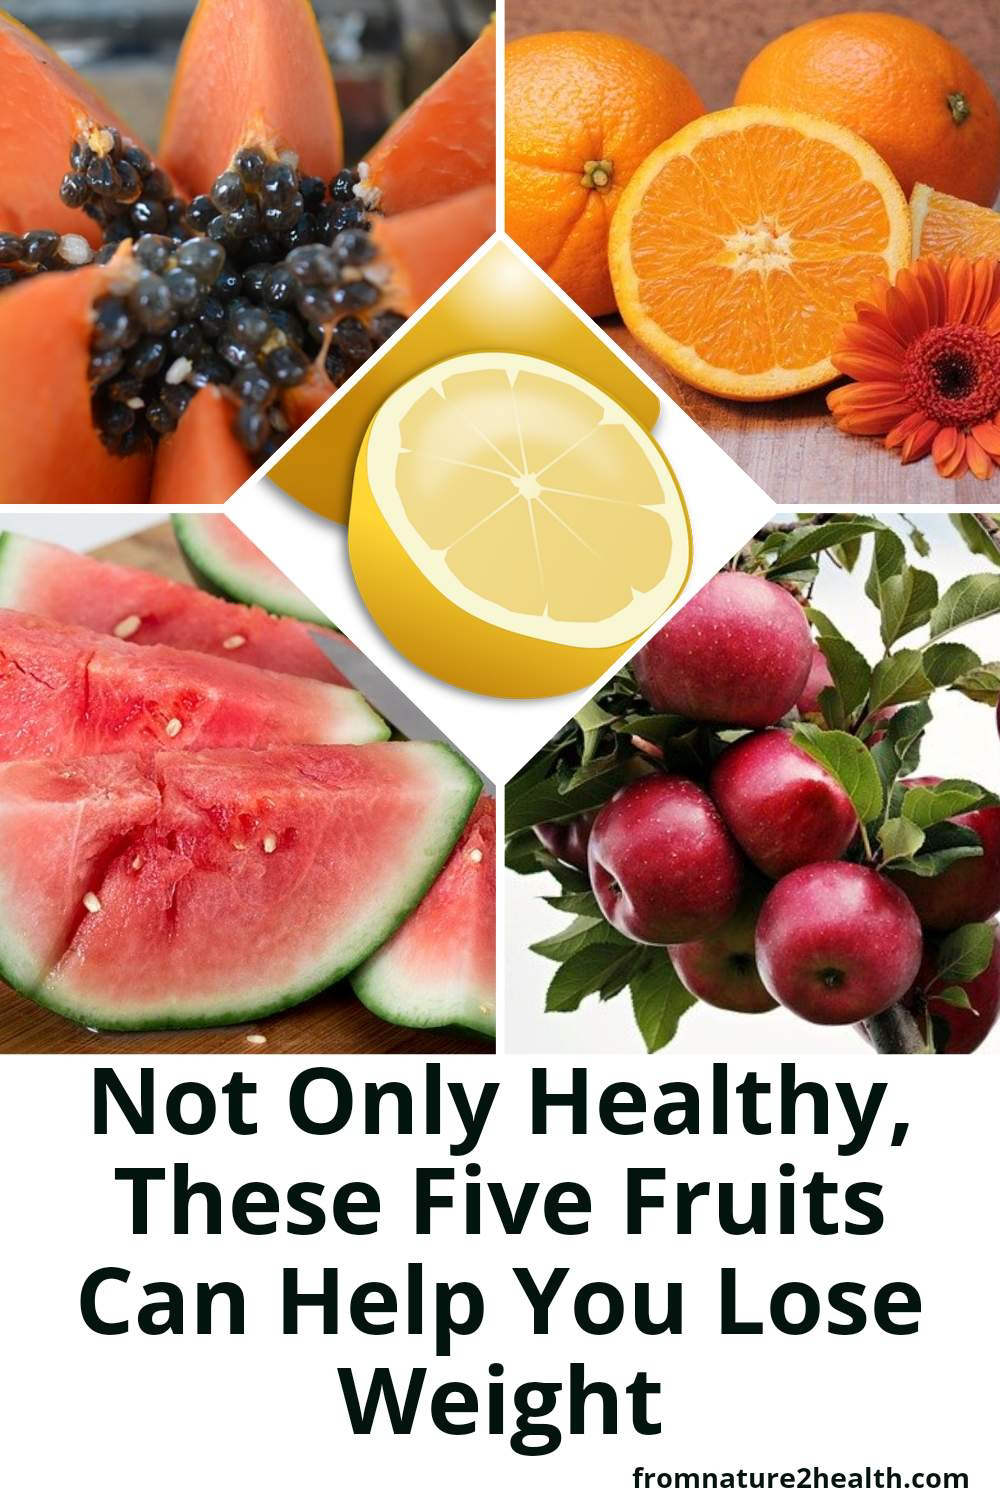 Not Only Healthy, Apple, Lemon, Orange, Papaya, Watermelon Can Help You Lose Weight